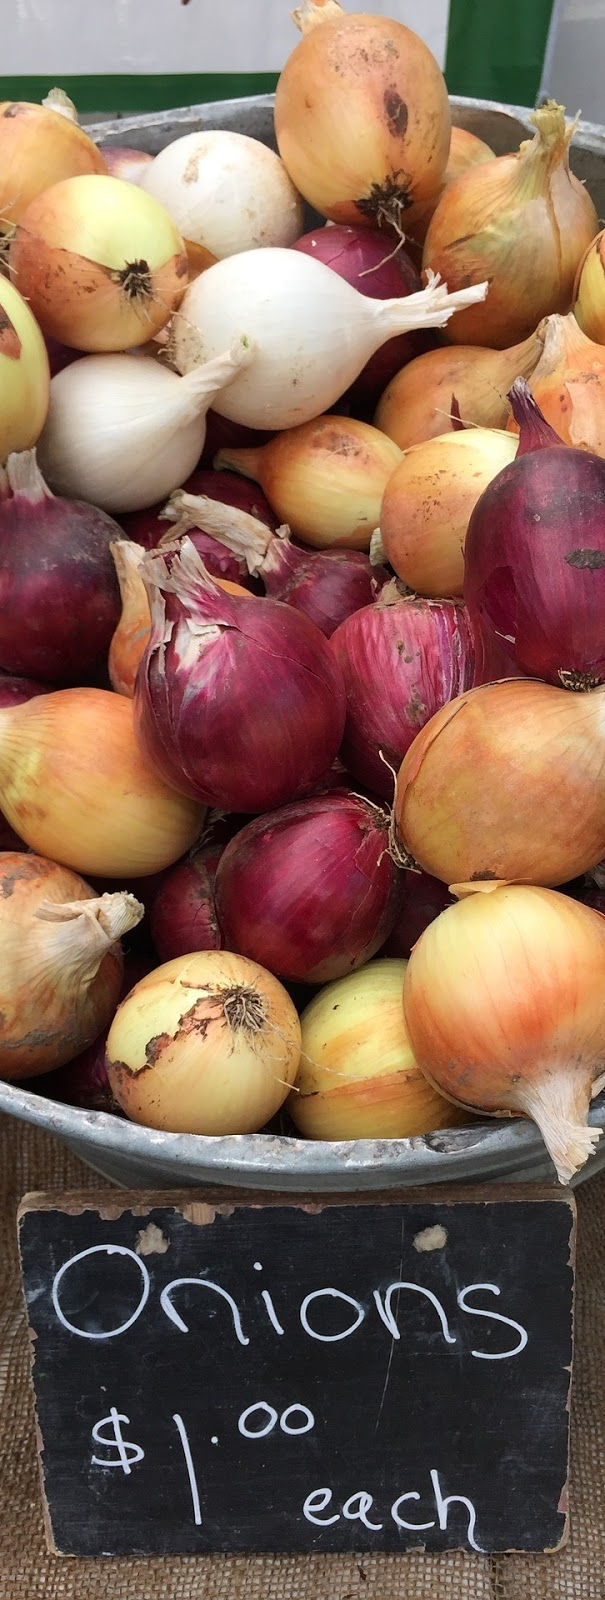 Onions selling price.